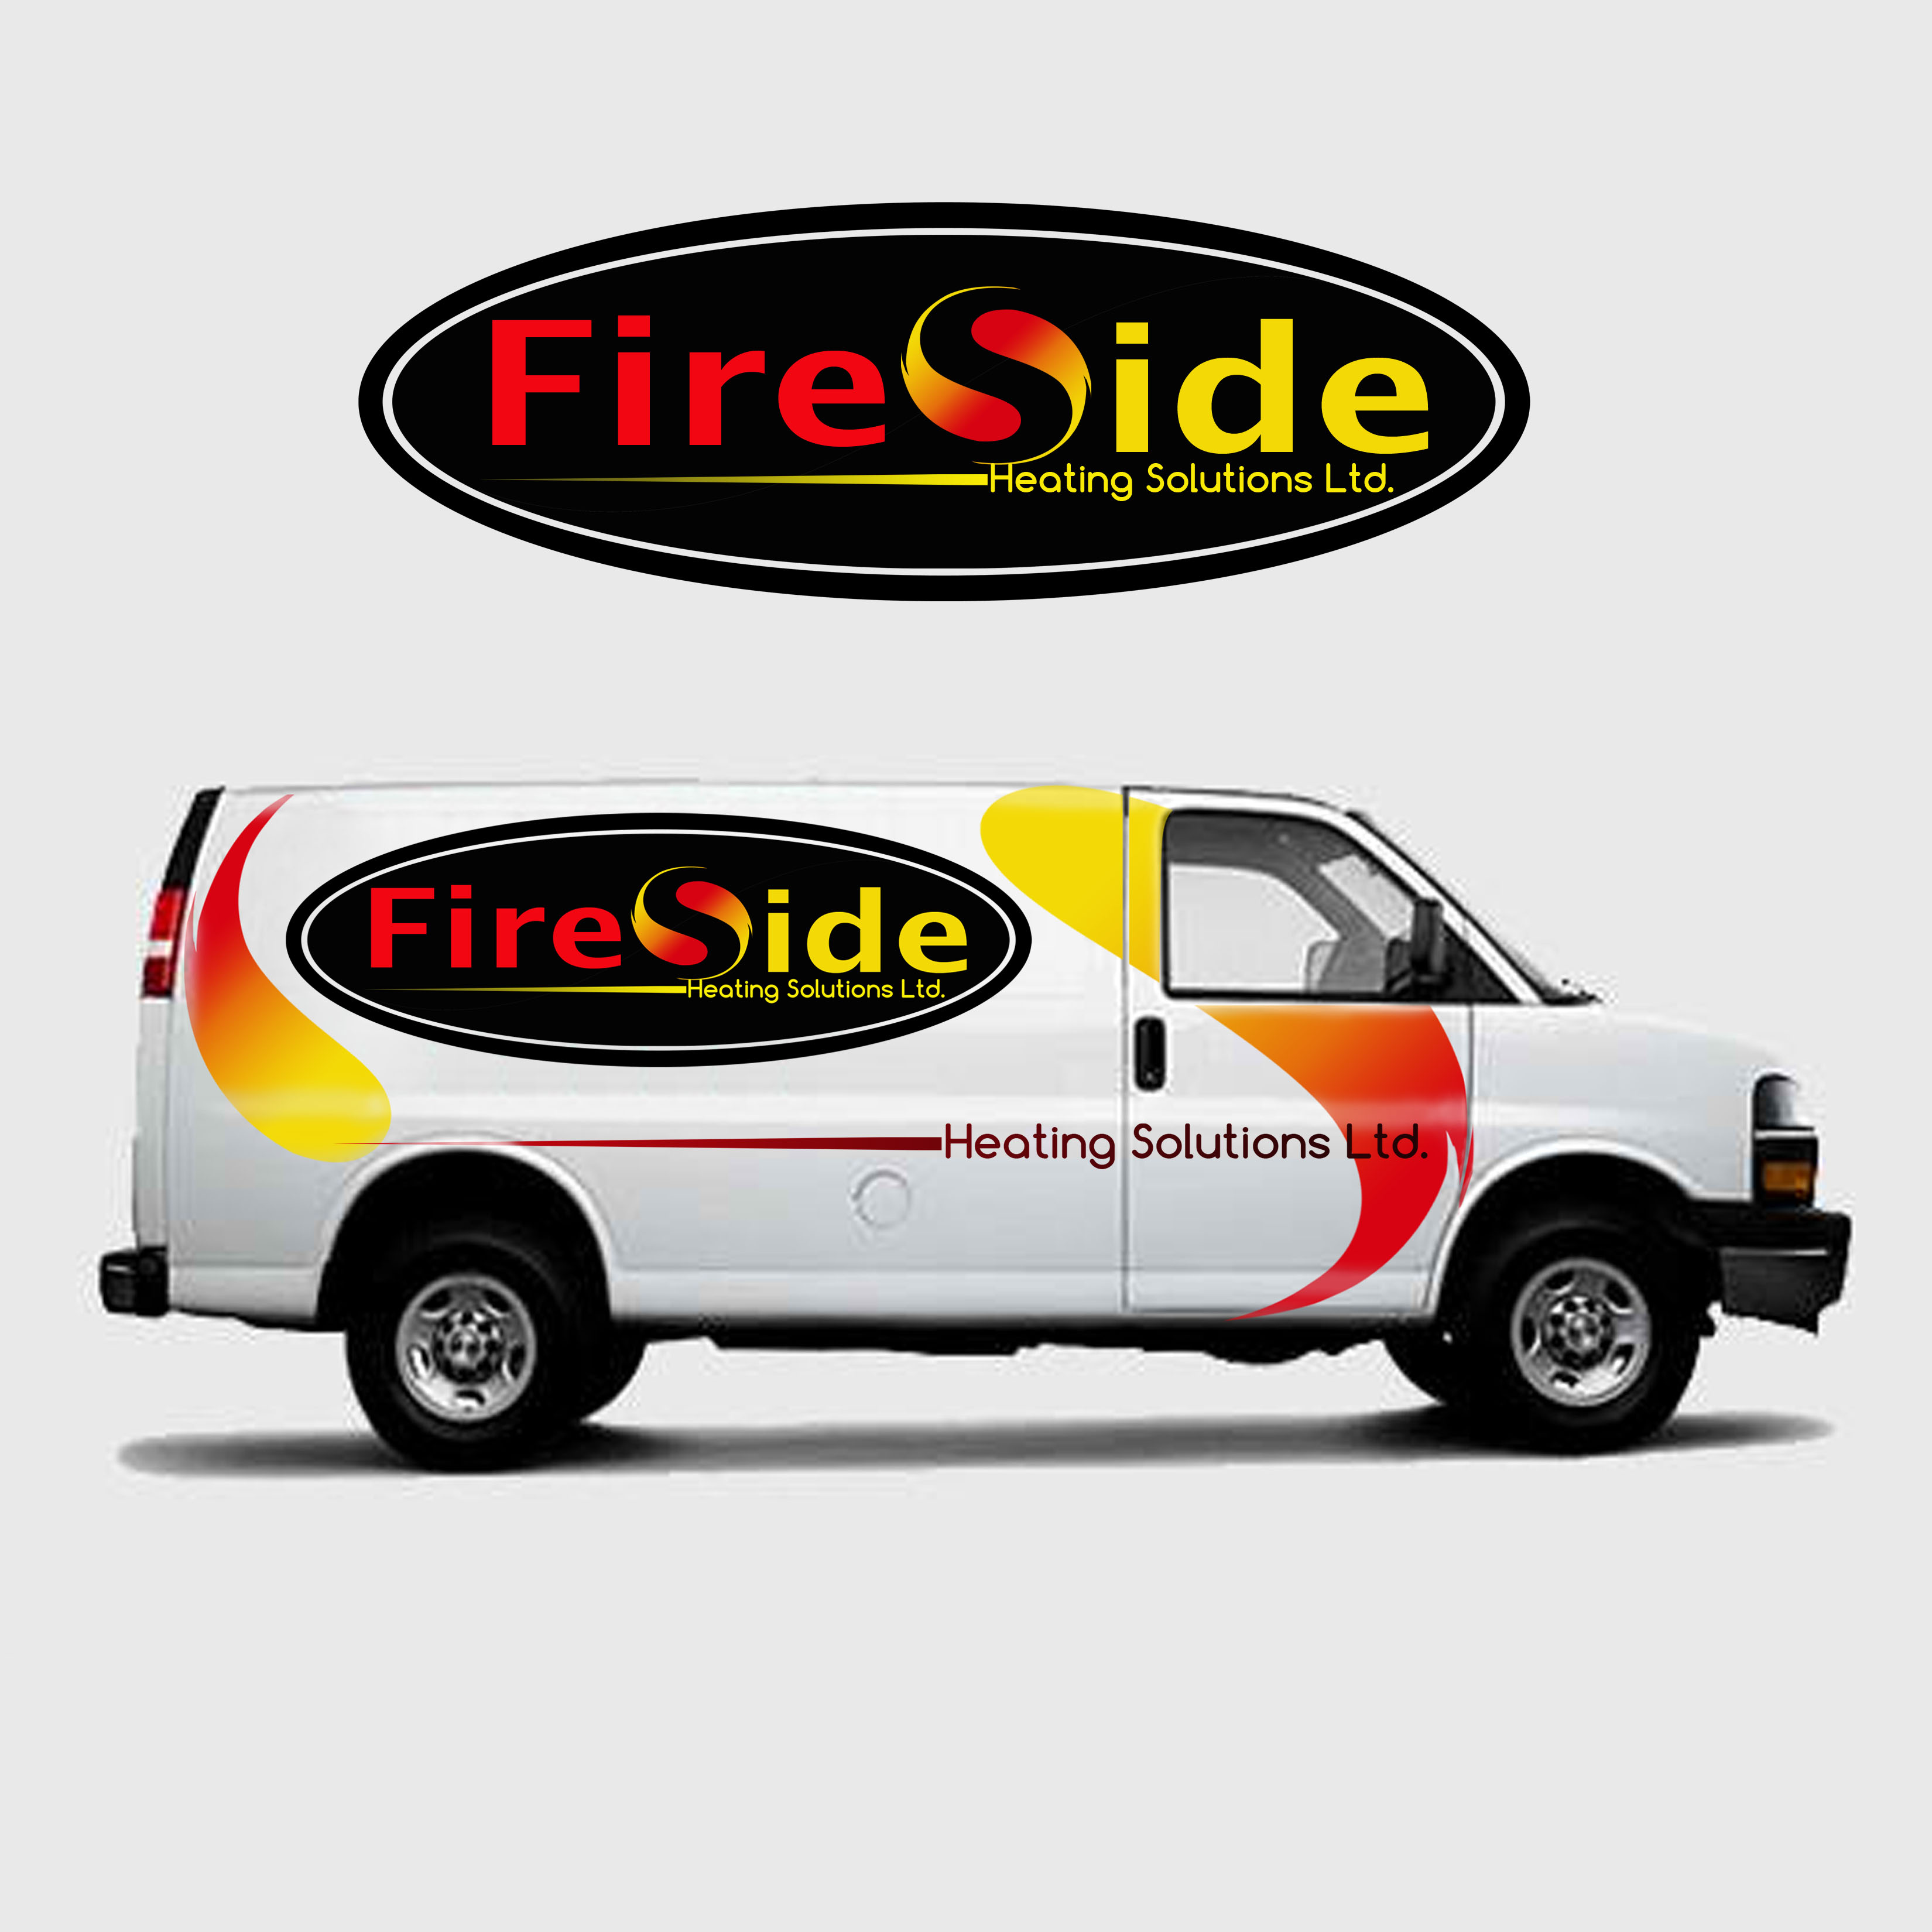 Logo Design by Allan Esclamado - Entry No. 38 in the Logo Design Contest Creative Logo Design for Fireside Heating Solutions Ltd..